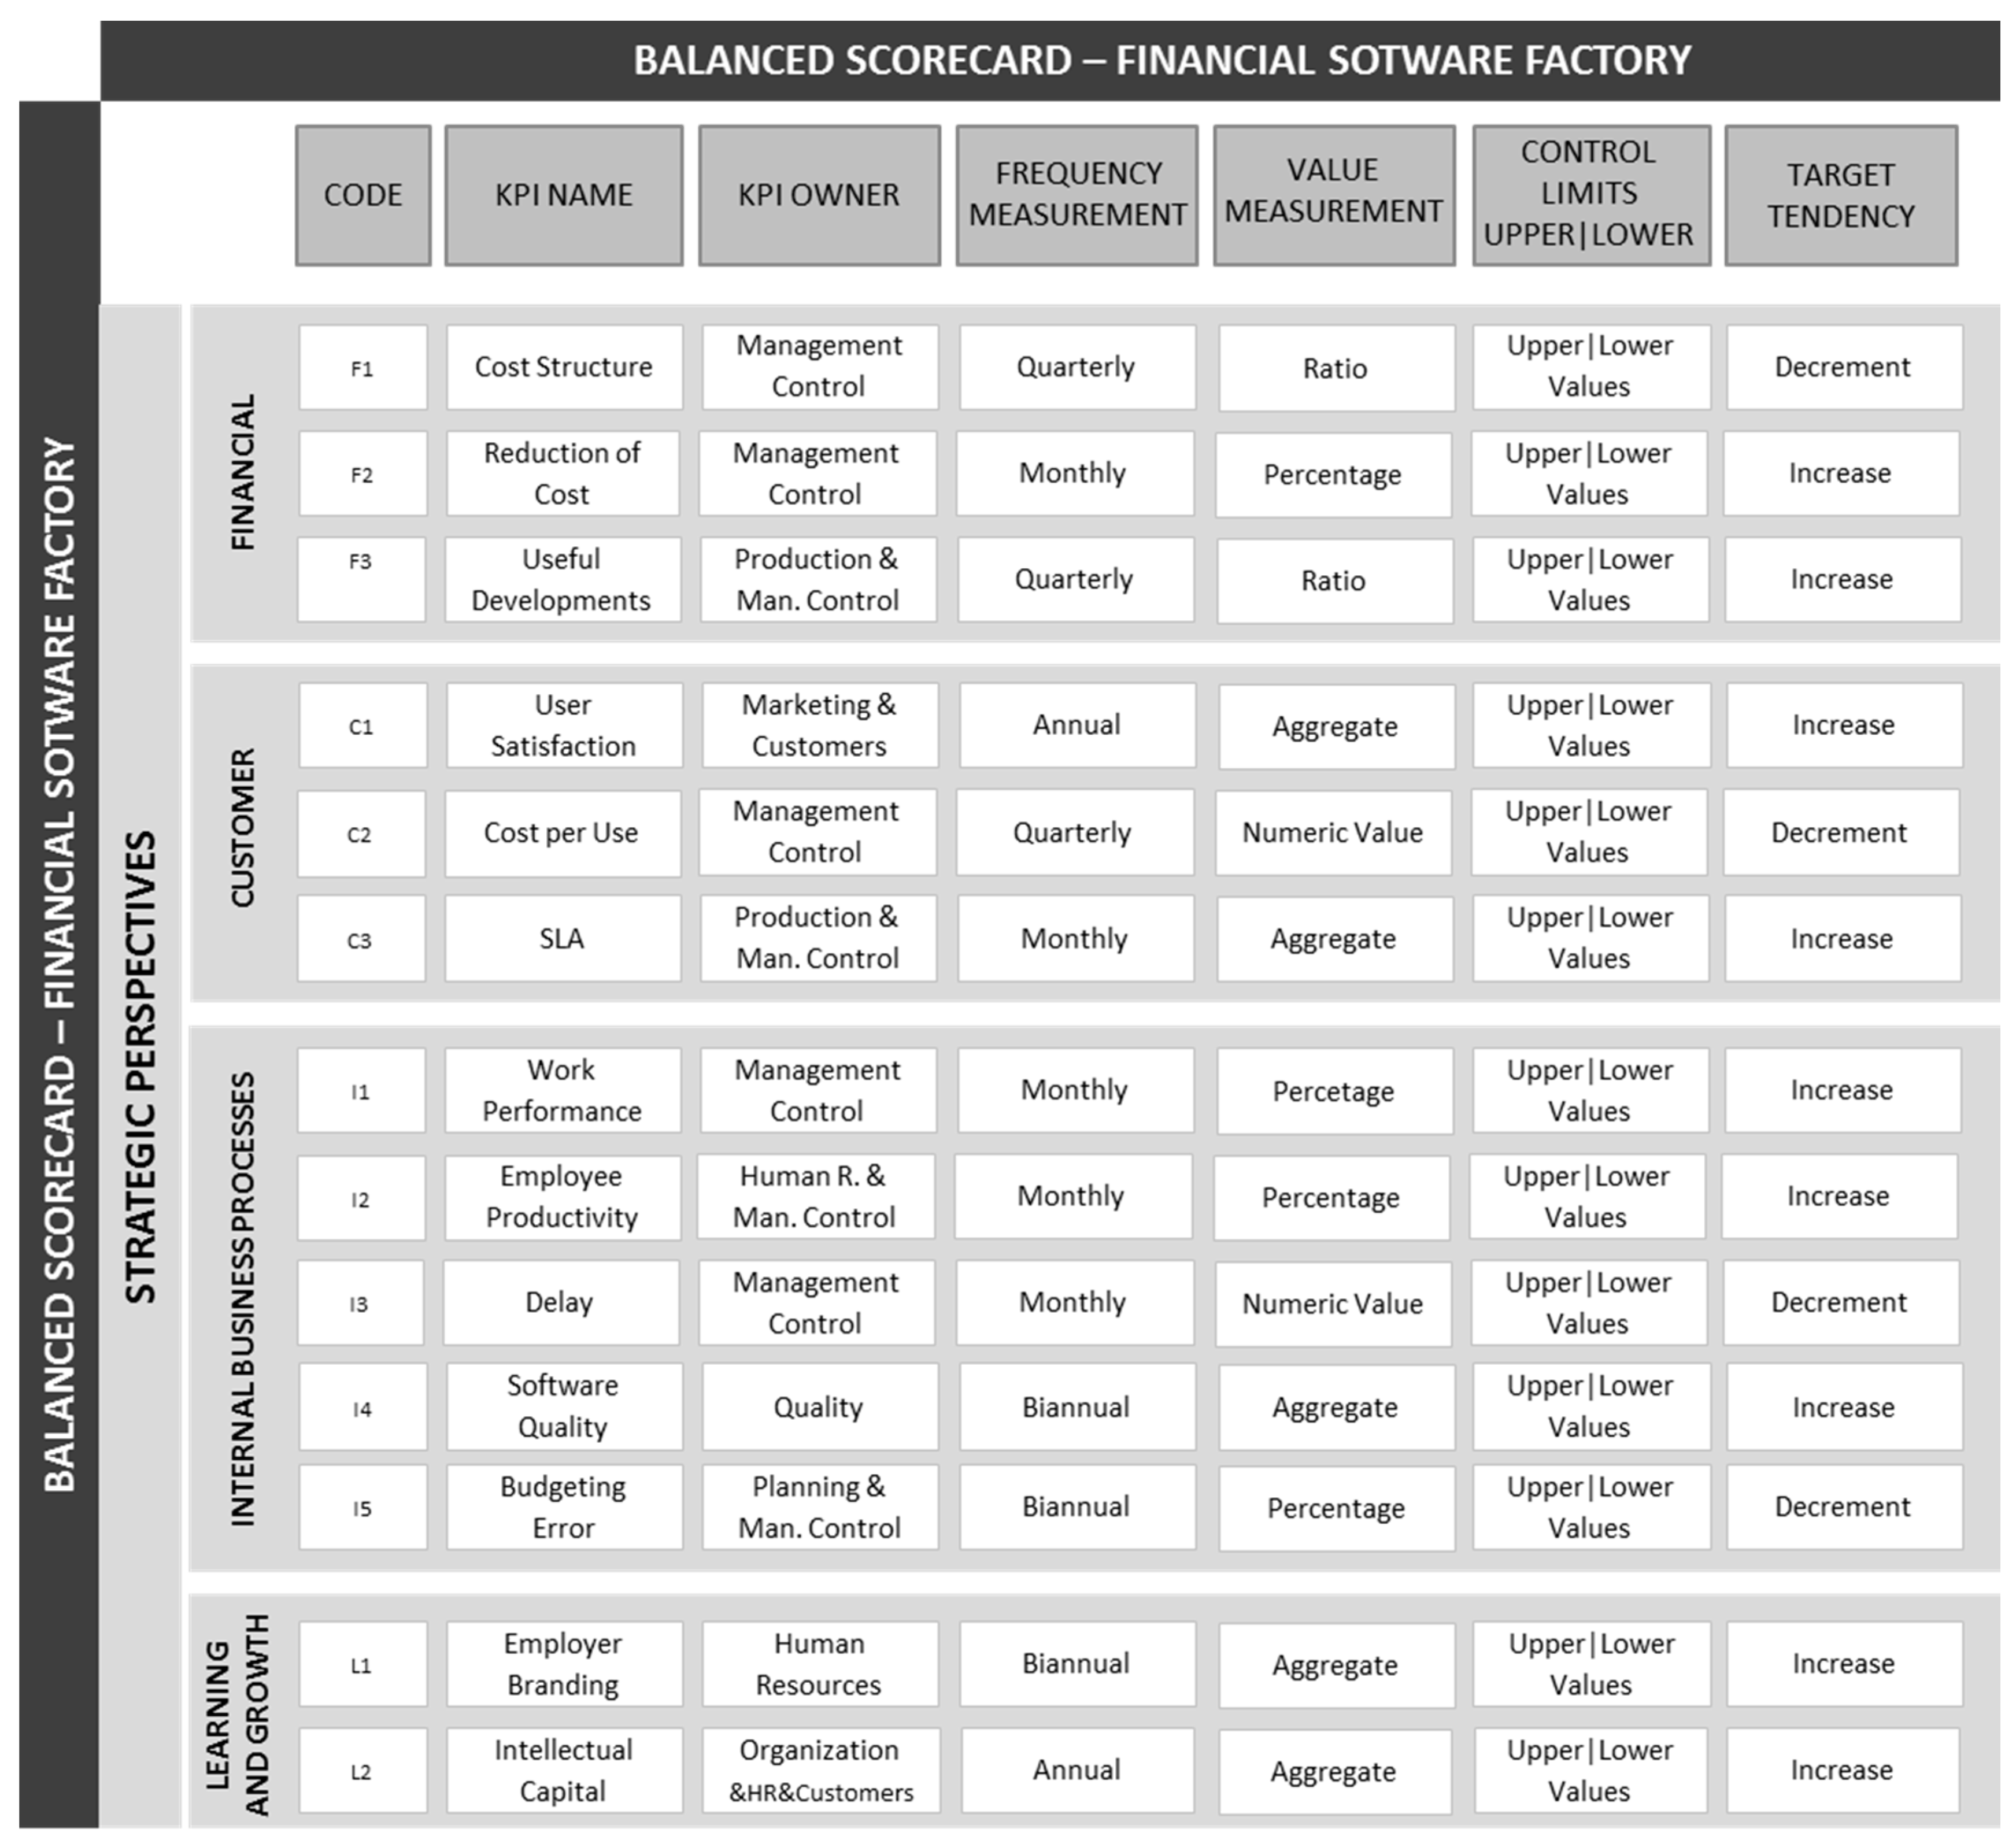 sustainability and the balanced scorecard essay The balanced scorecard, popularized by harvard professor robert kaplan and david norton in the early 1990s, is the de-facto standard in the world of strategic performance scorecards for measuring financial and non-financial performance however, balanced scorecards lack arguably the most.